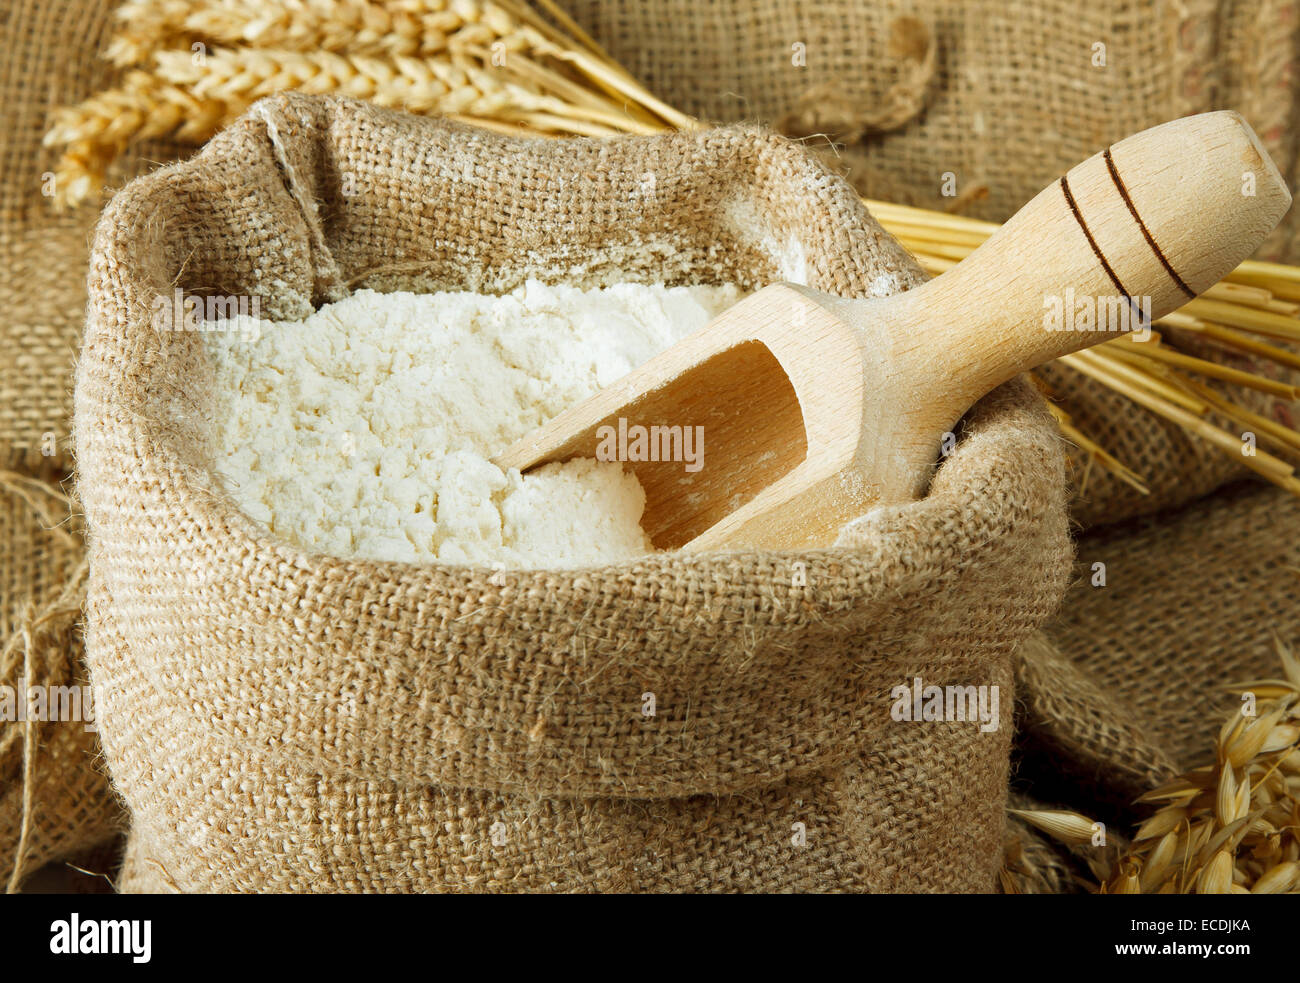 Flour in burlap bag and wooden spoon - Stock Image